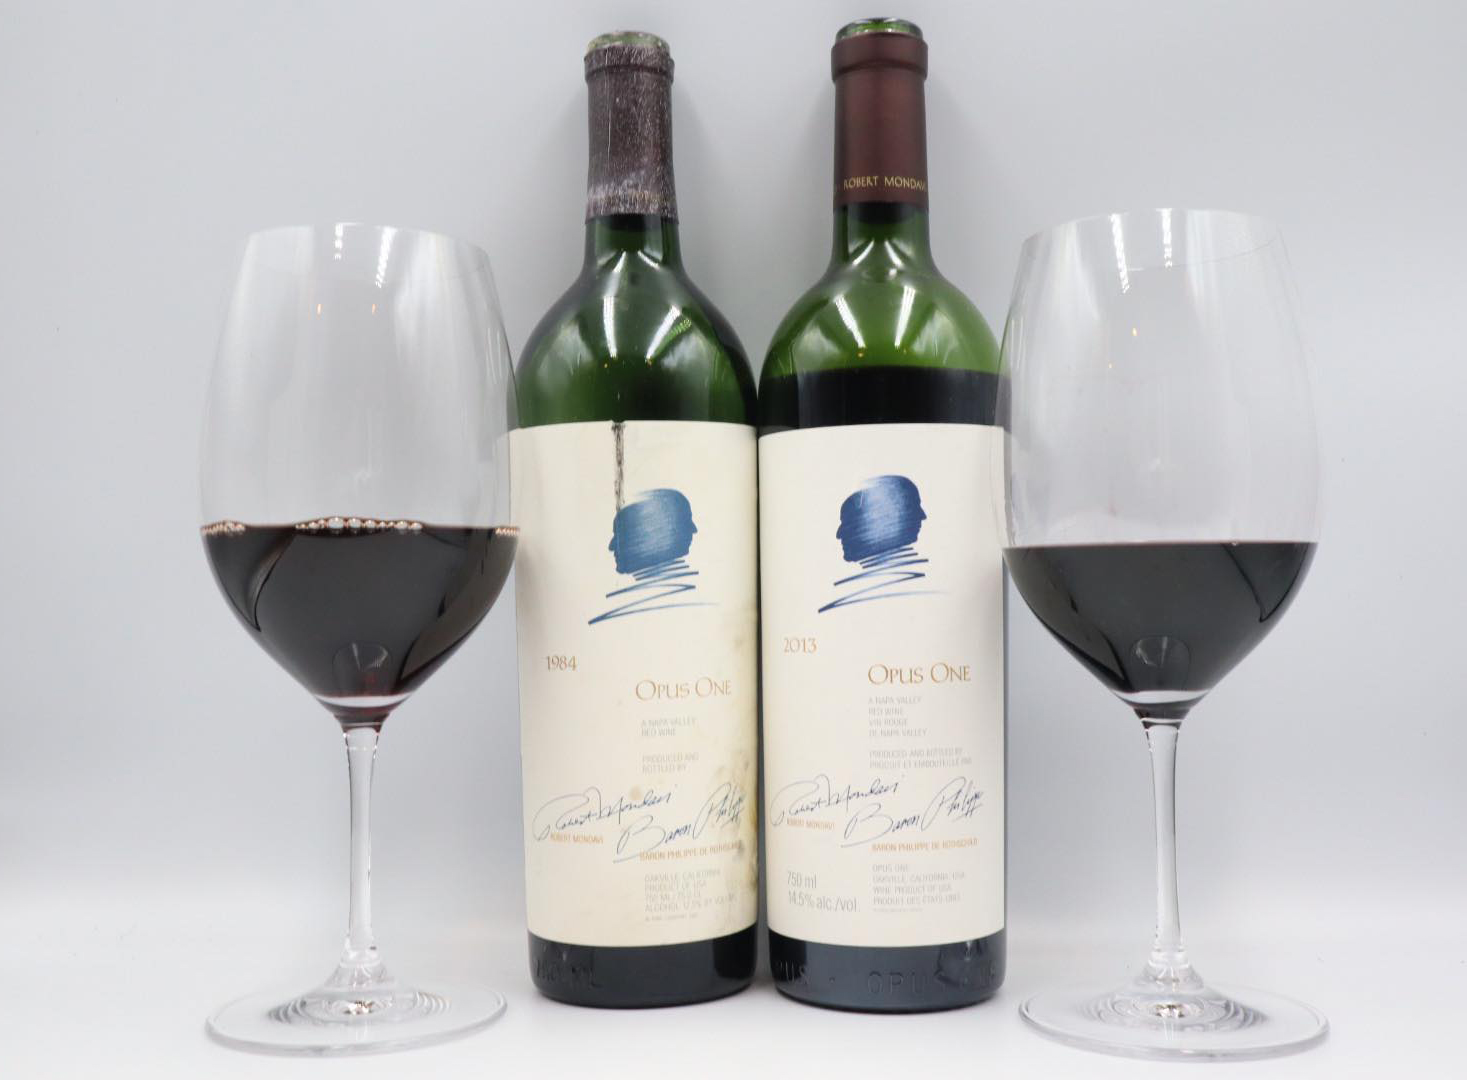 Opus One 2013 vs Opus One 1984